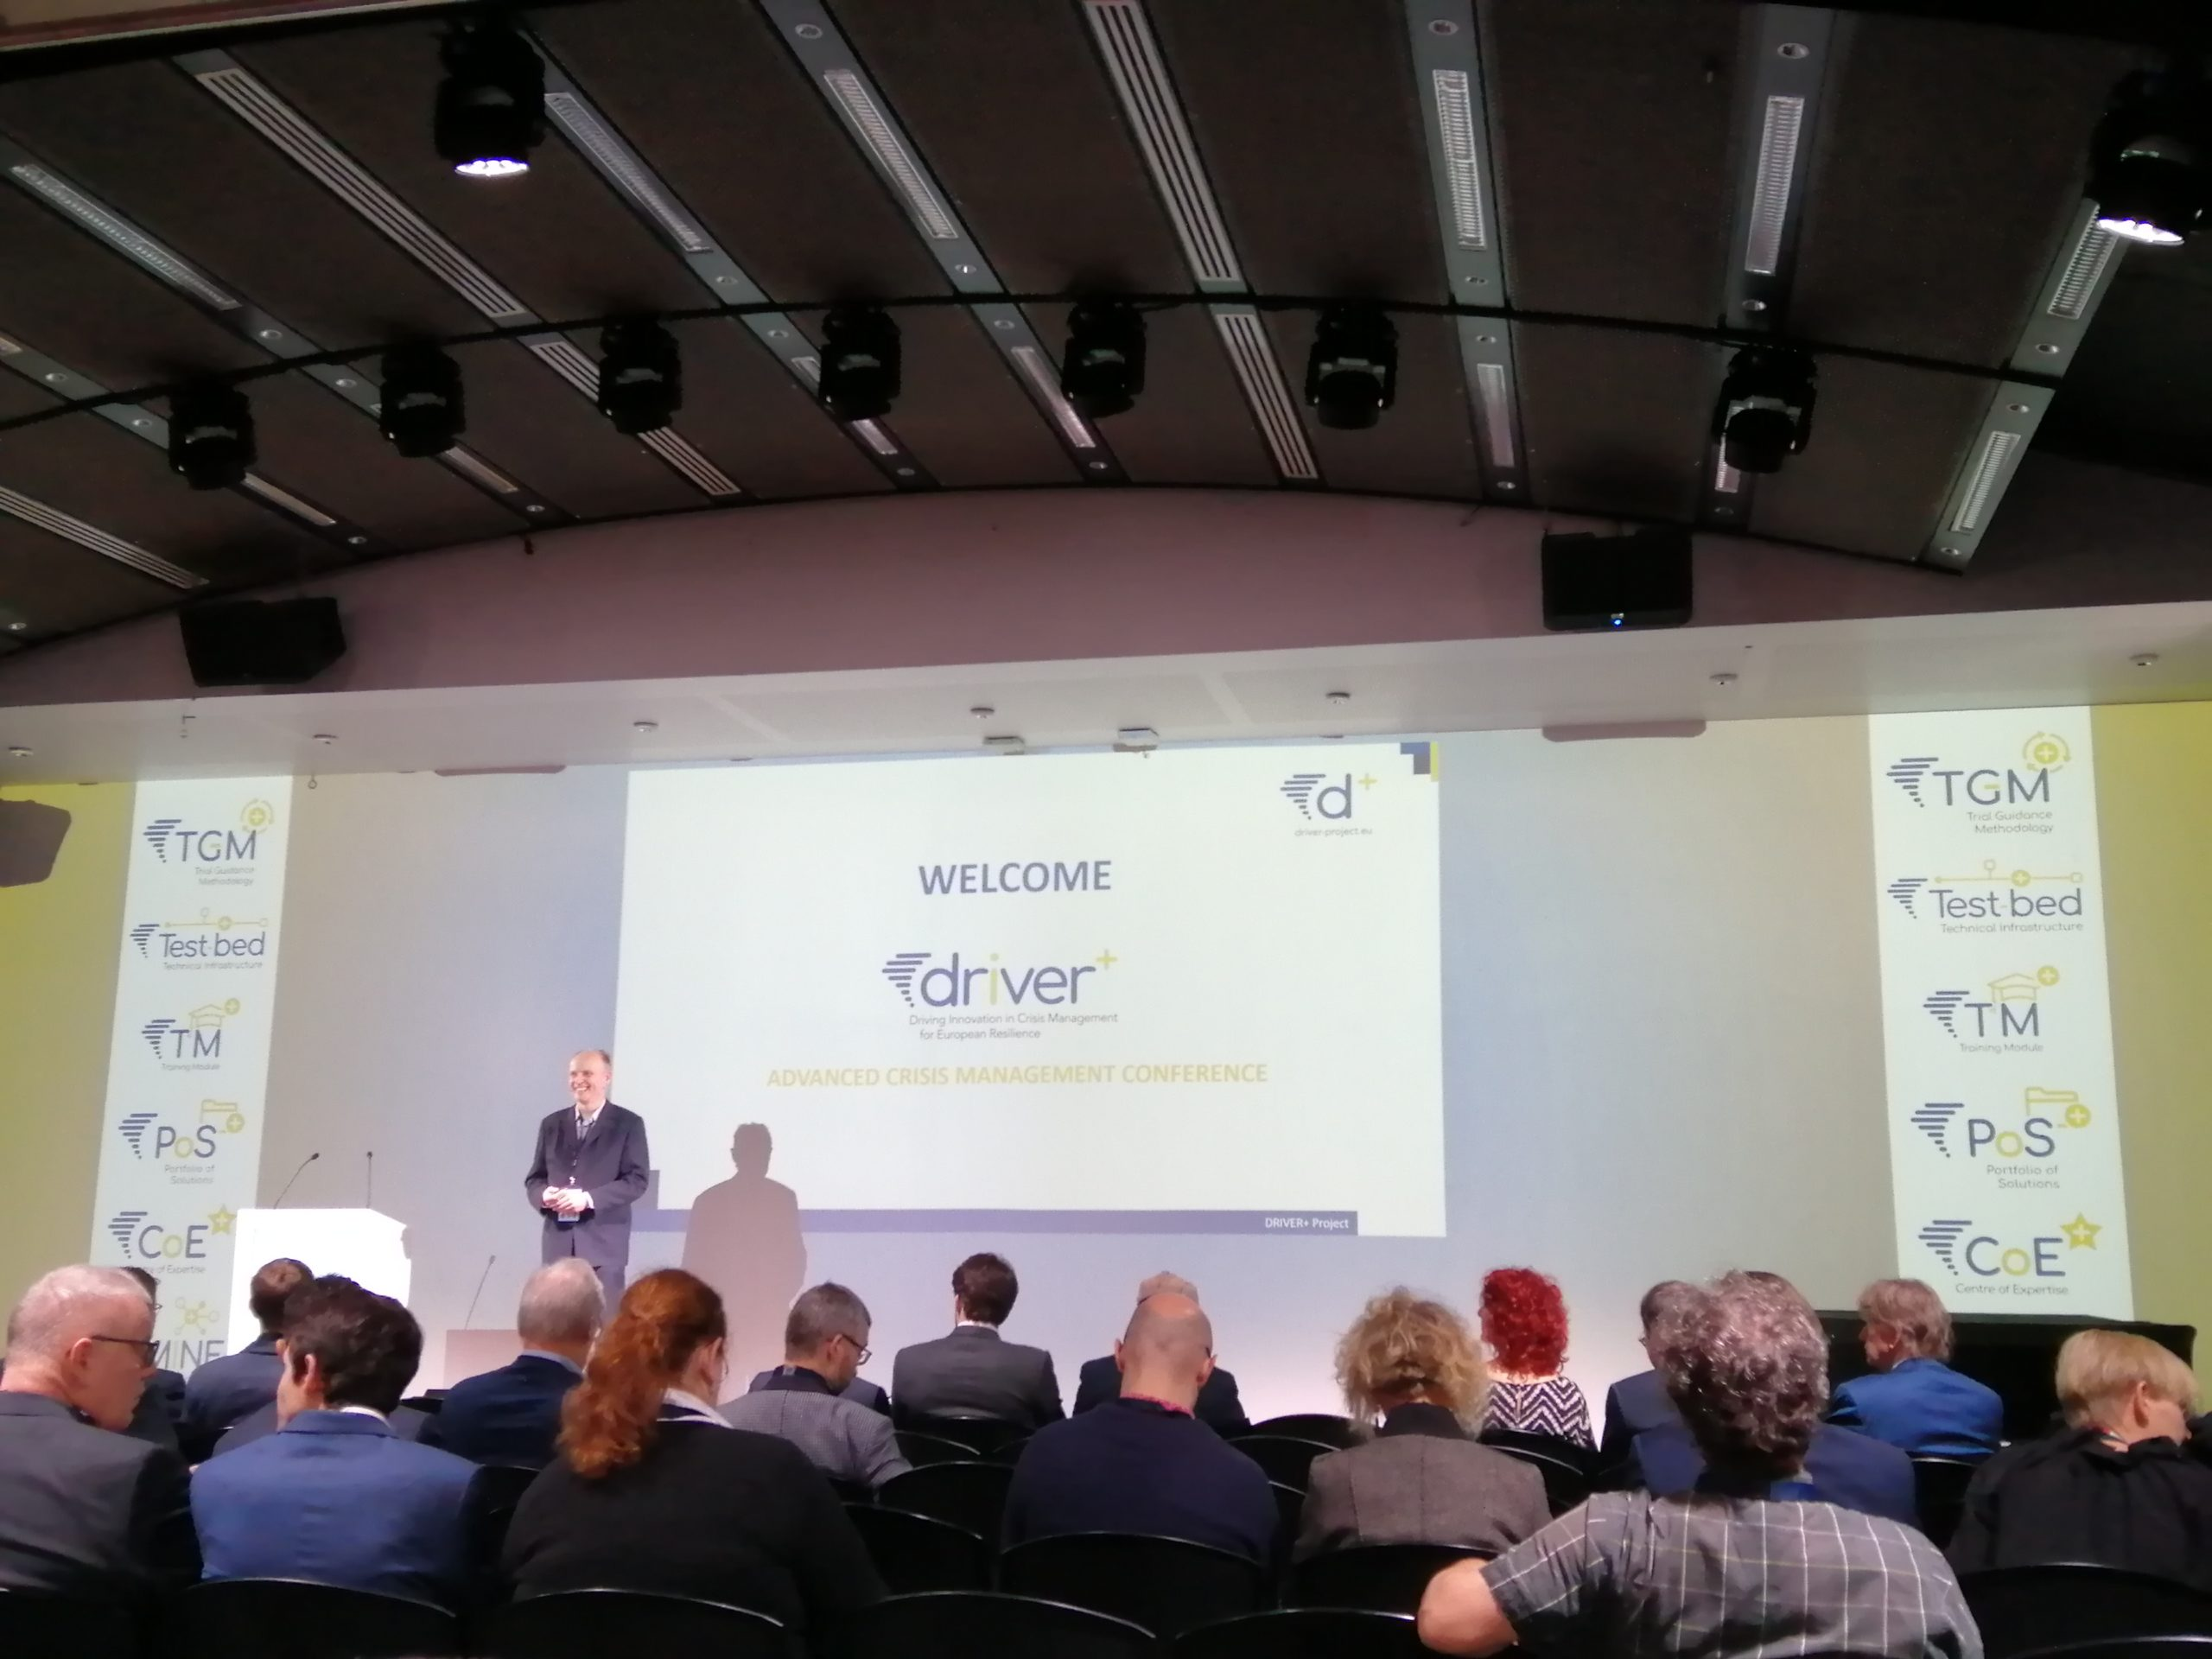 ResponDrone attends Driver+ final conference to gain important insight on pan-European crisis management efforts